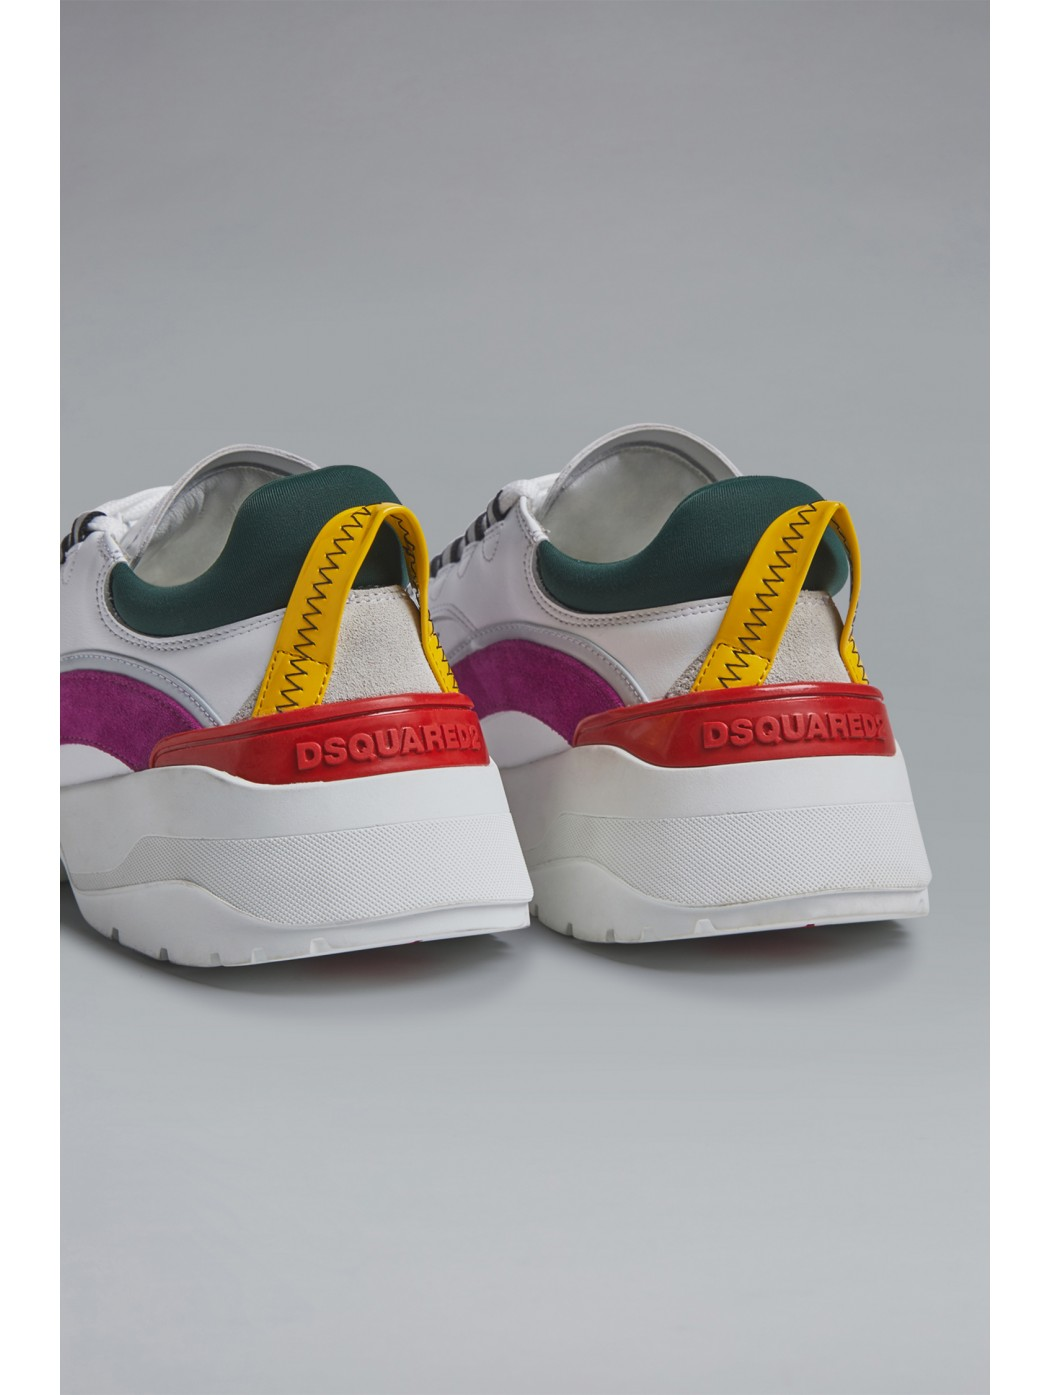 SNEAKER DSQUARED2 SNW010401502113 M1820